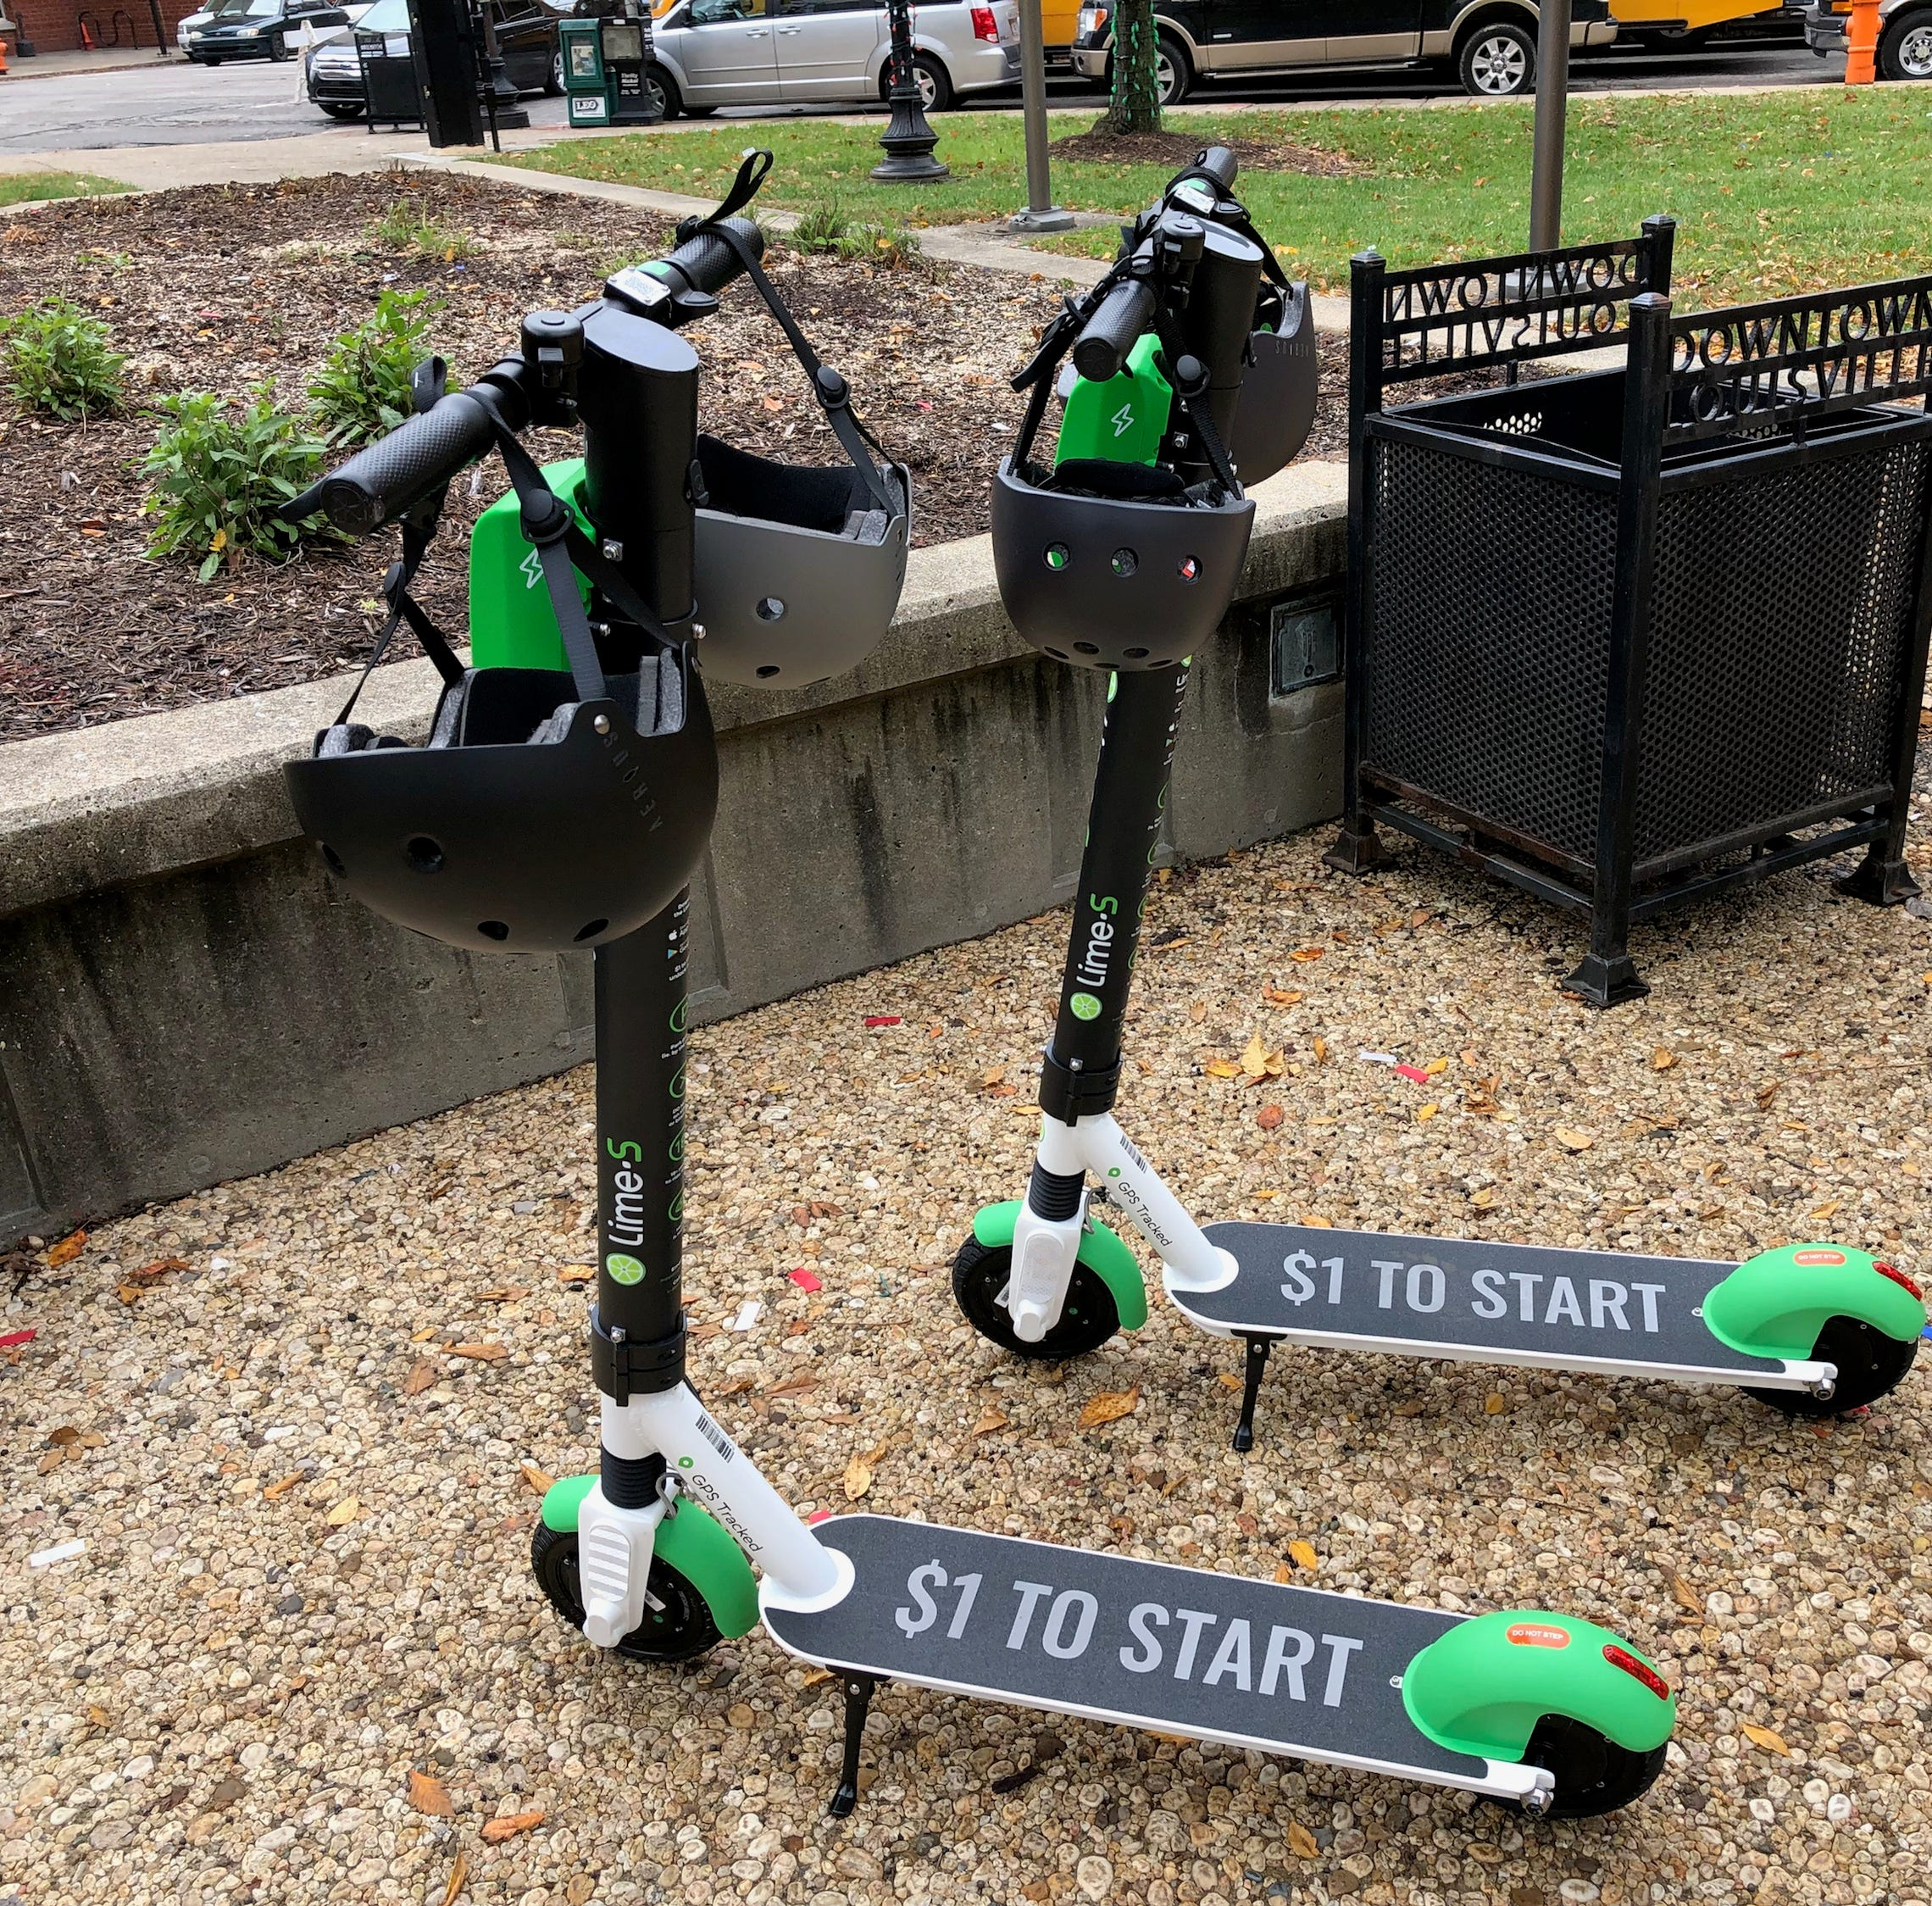 Vote in our poll. Should rideshare scooters come to Fort Collins?